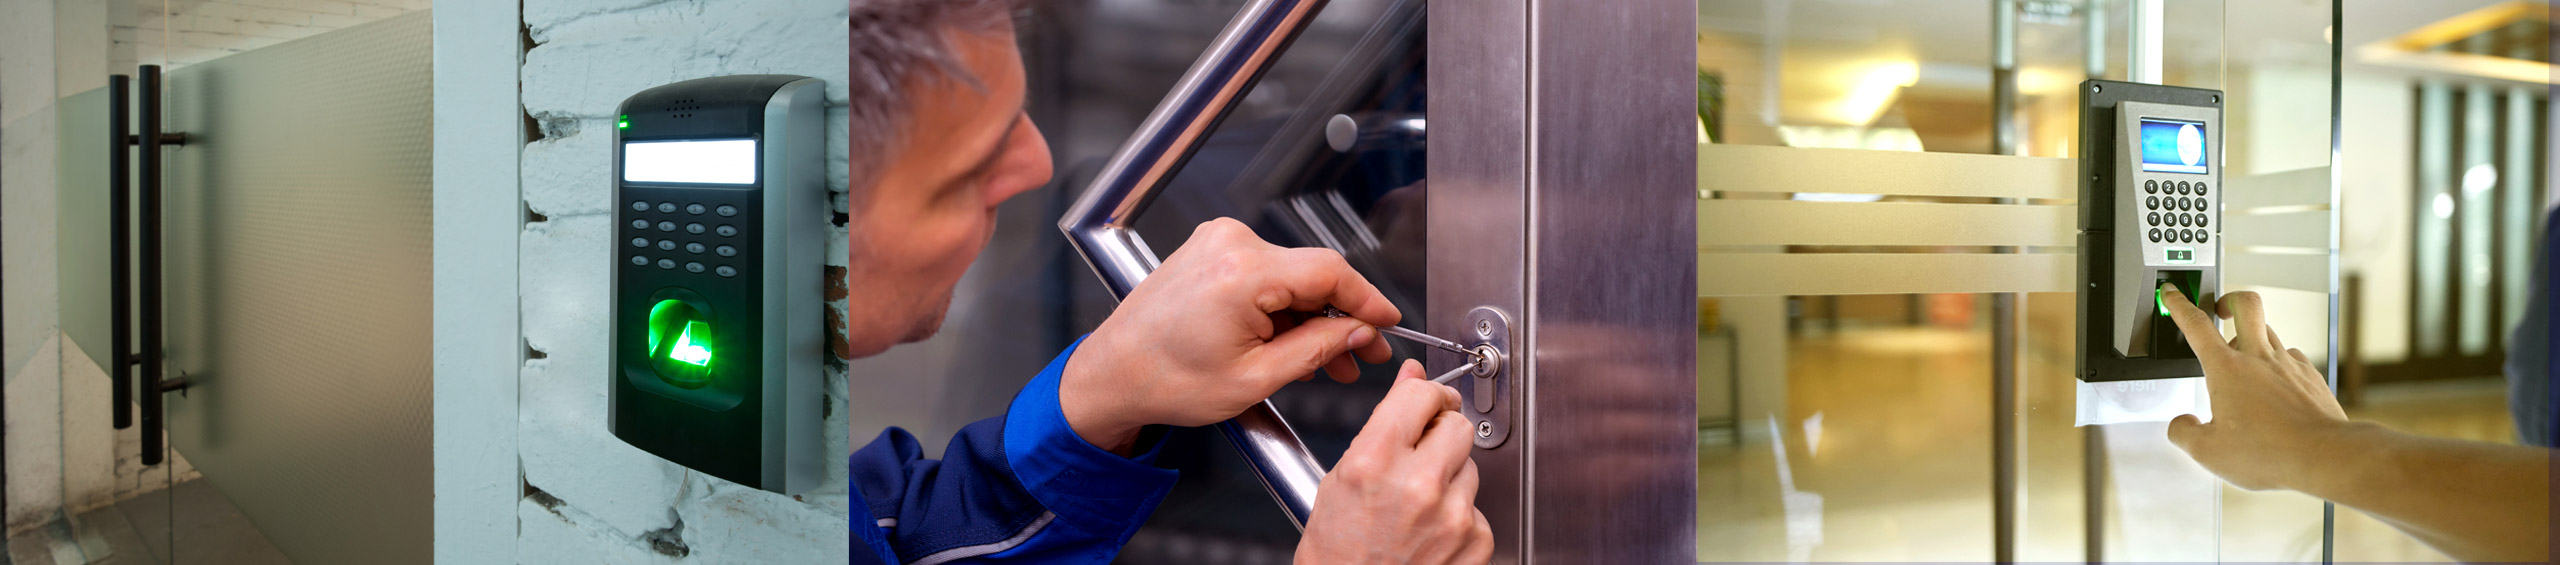 Automotive Mobile Locksmith in Jeffersonville, Clarksville, Charlestown, Sellerbsy, New Albany, and Clark County